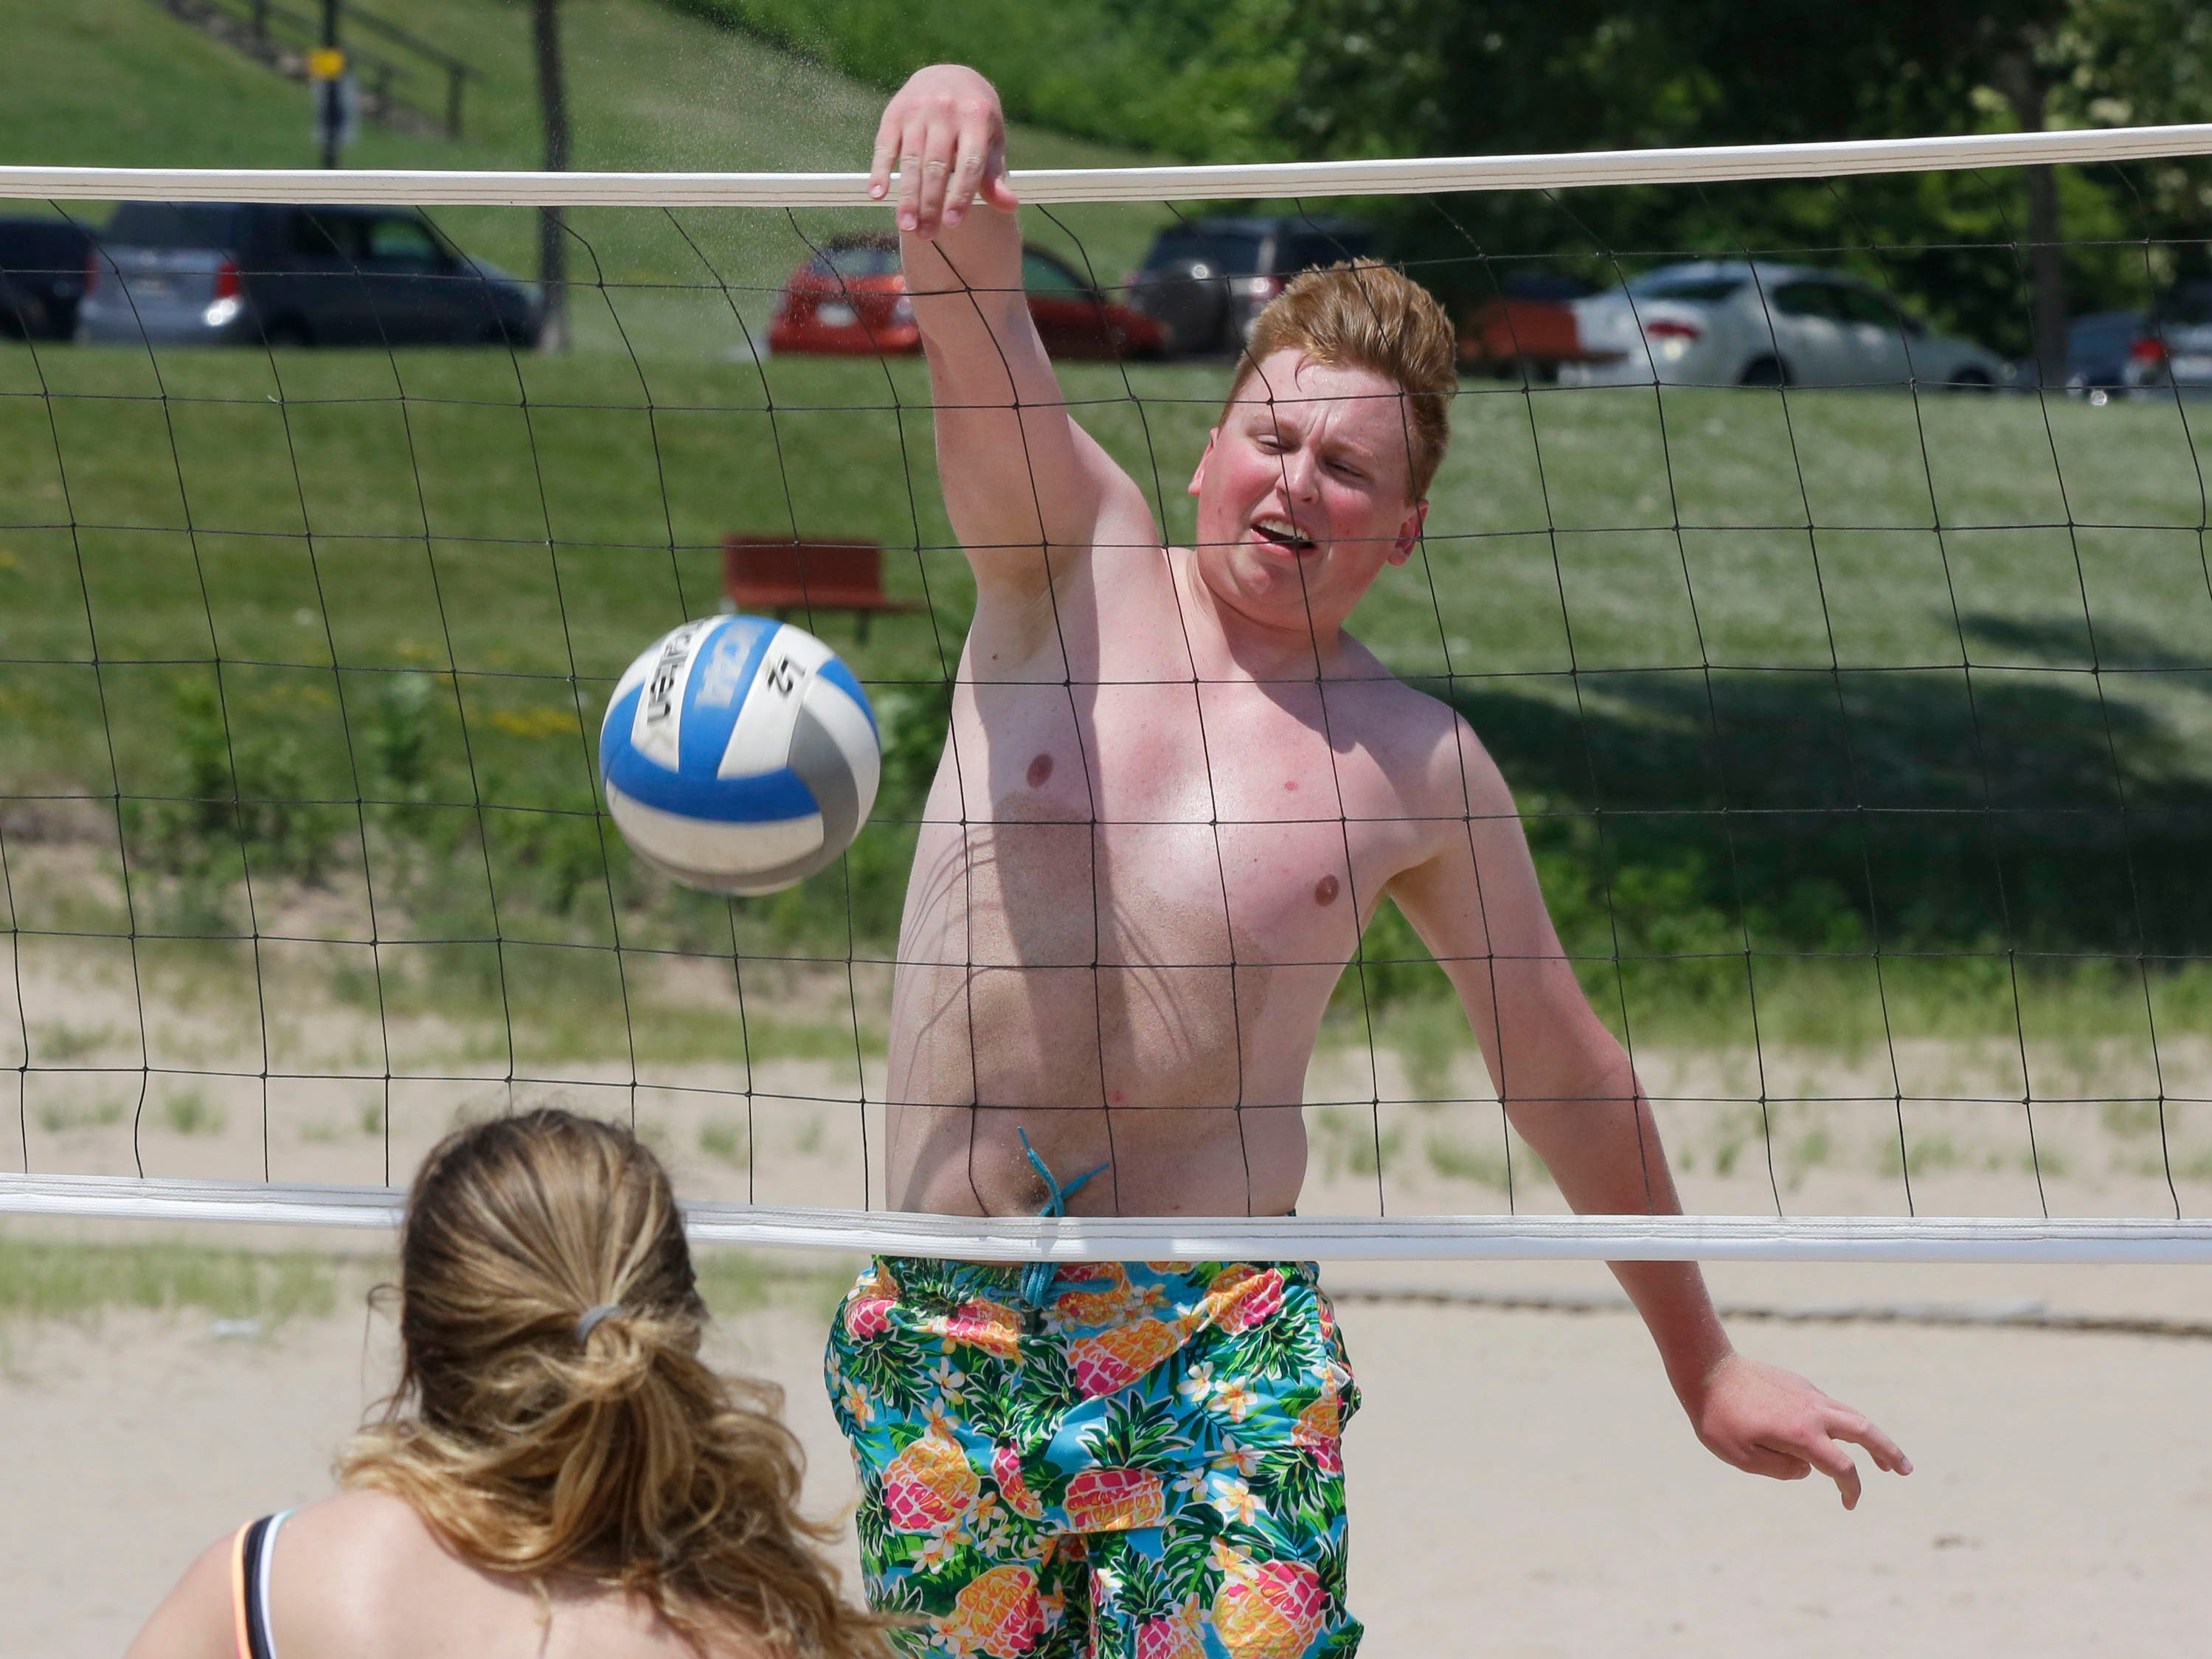 Max Brink of Wausau, Wis. spikes the ball by Rebecca Oliver of Sheboygan during a pickup volleyball game at Deland Park, Saturday June 30, 2018, in Sheboygan, Wis.